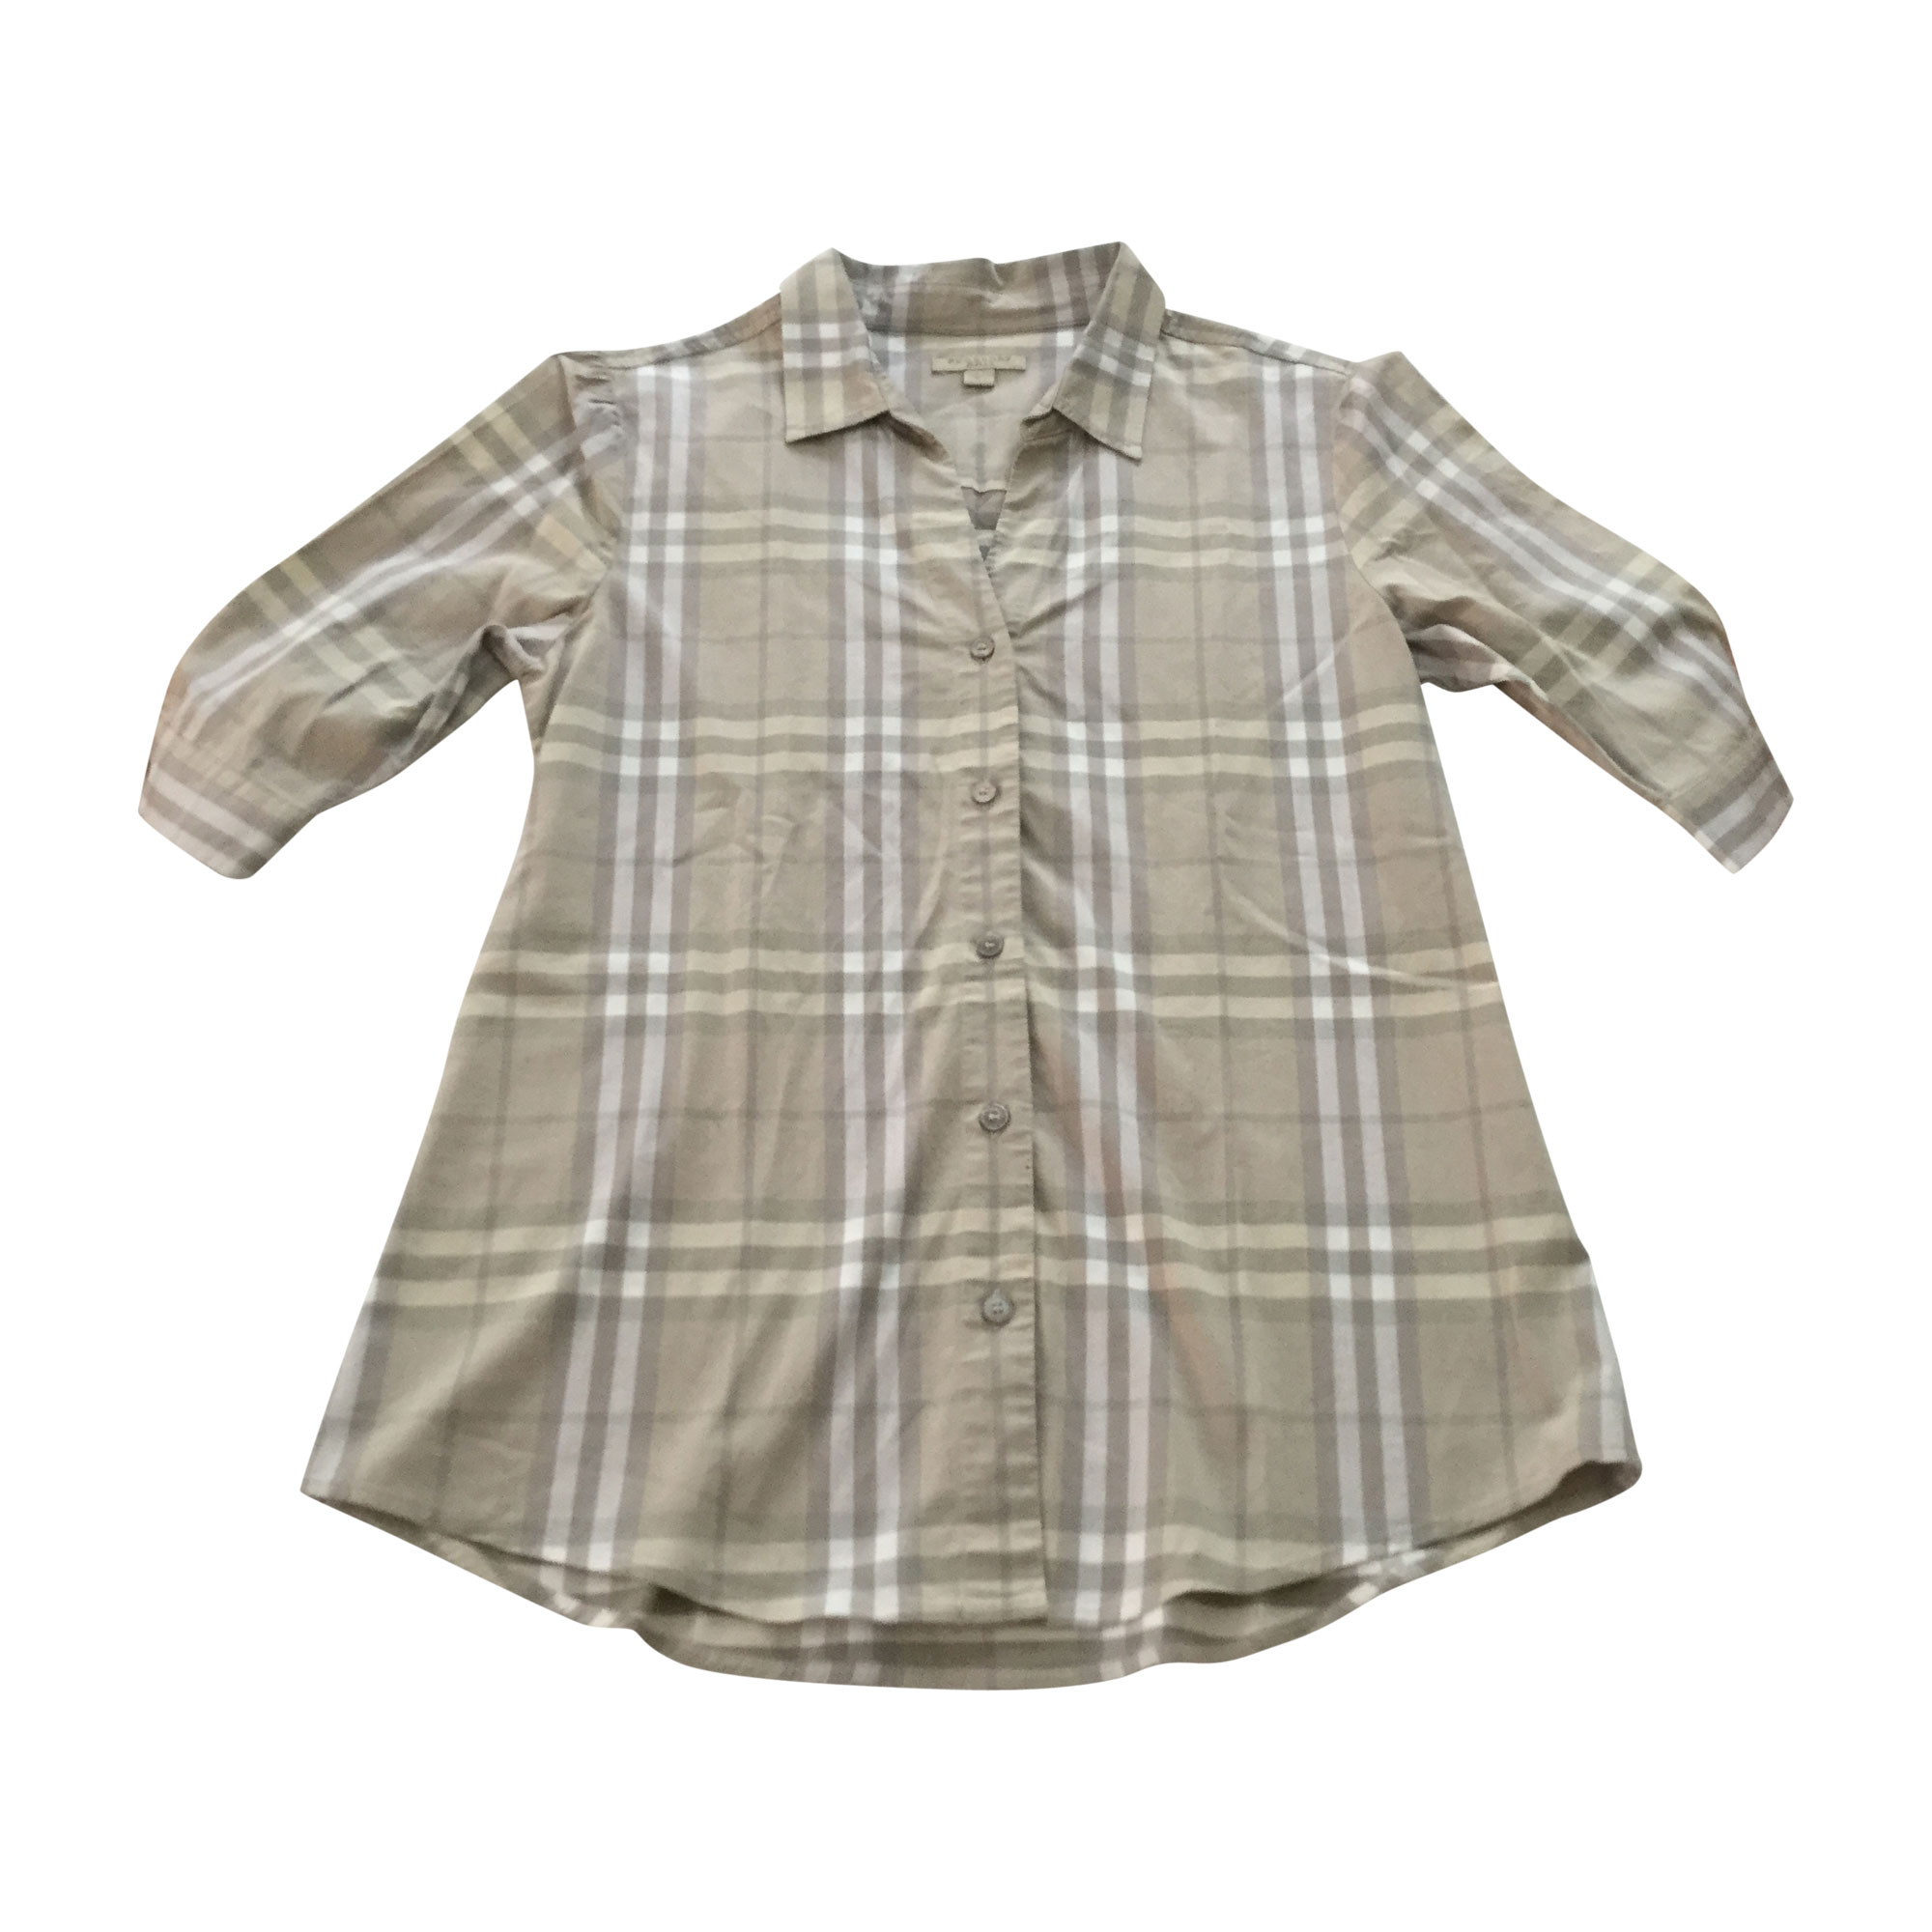 d41bf6f4f728 Chemise BURBERRY 36 (S, T1) beige - 6382296